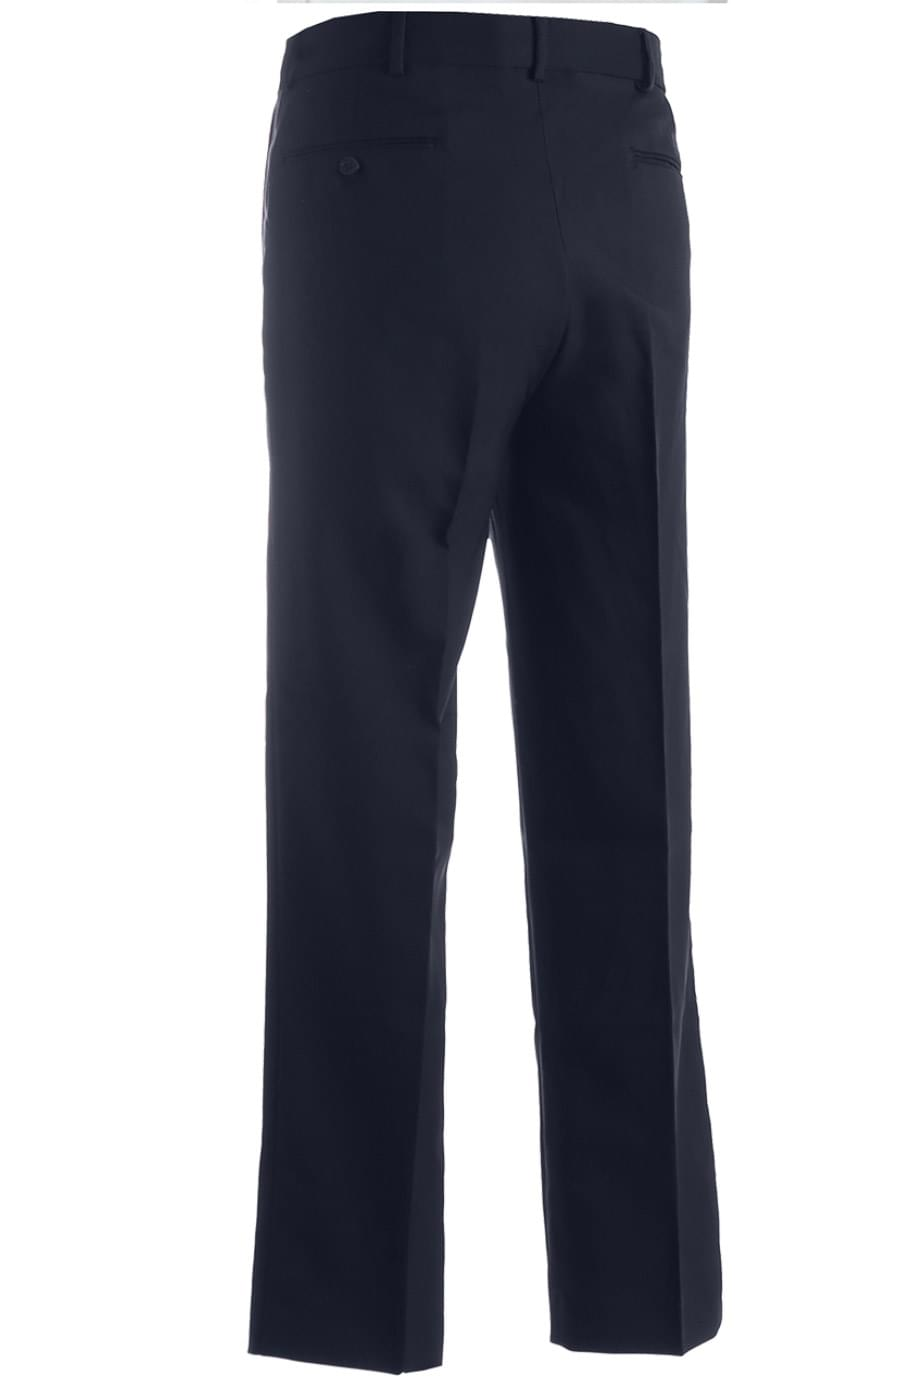 POLYESTER FLAT FRONT PANT